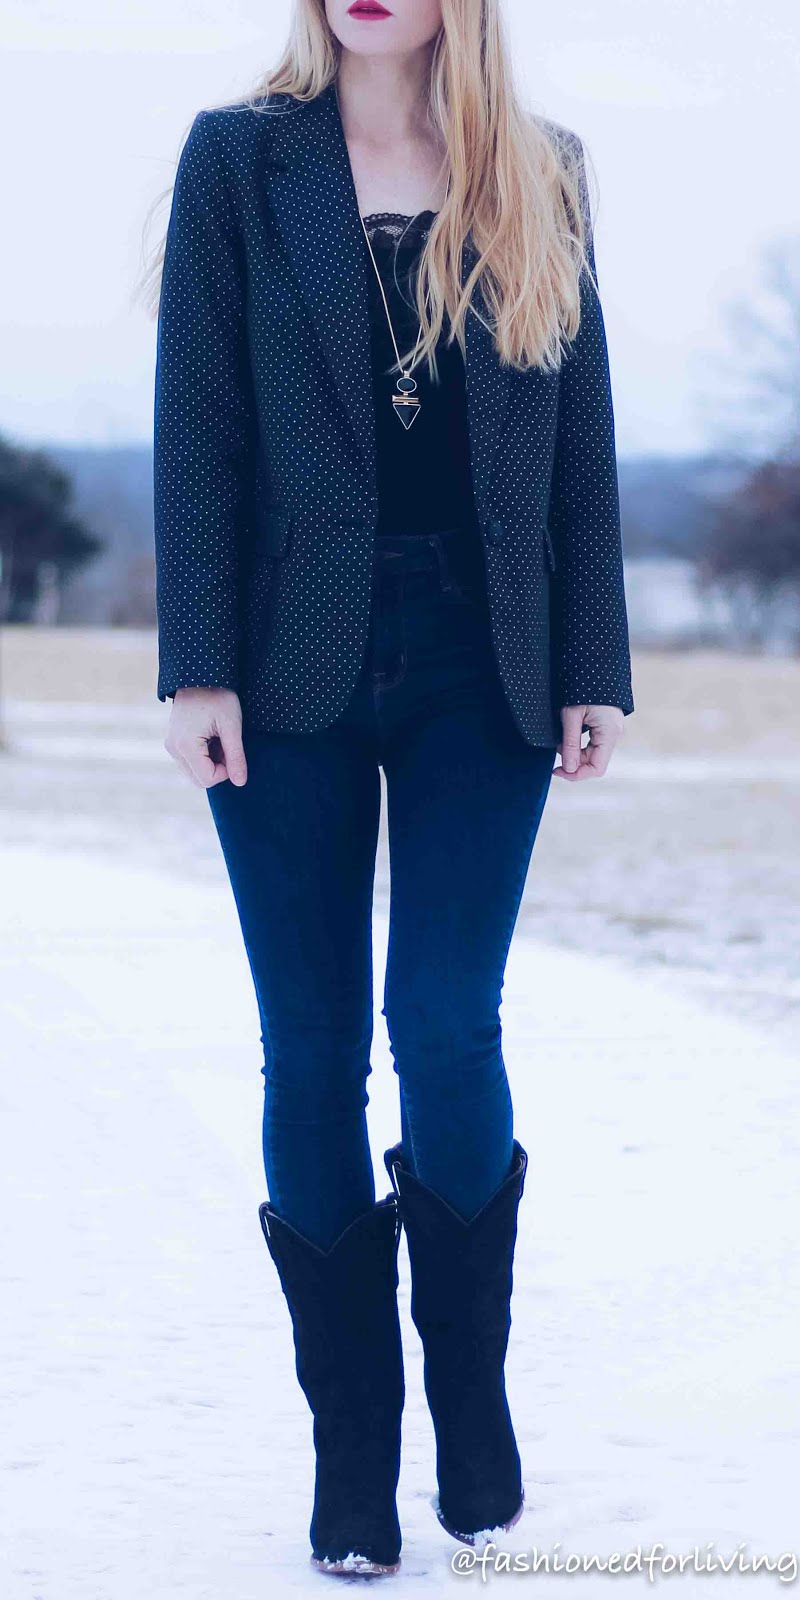 lace cami under blazer outfit